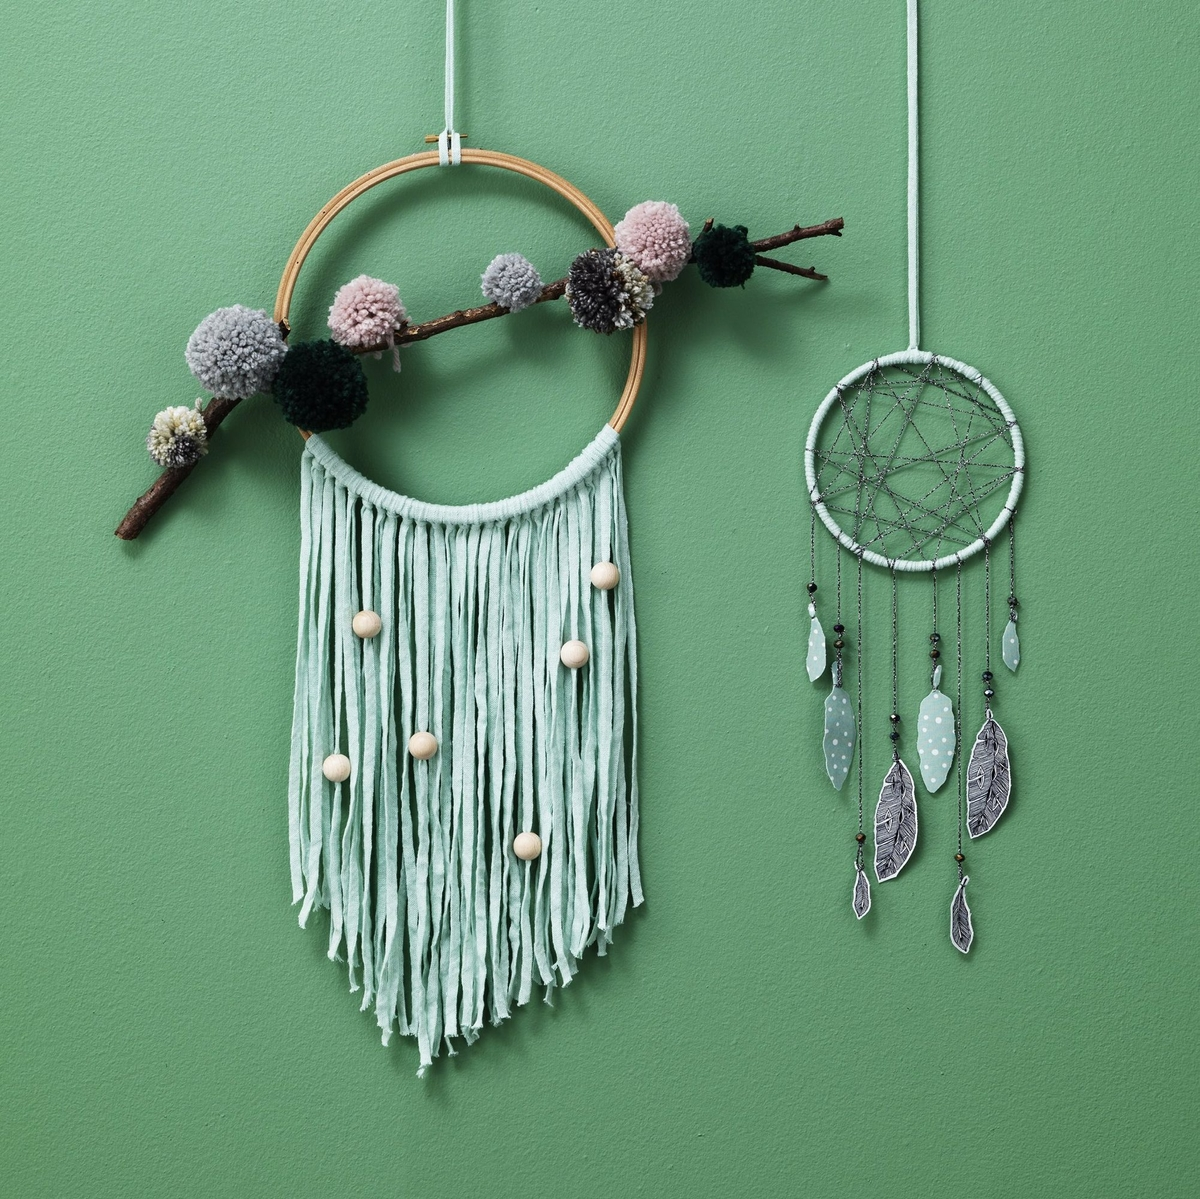 Sleep well with a dream catcher